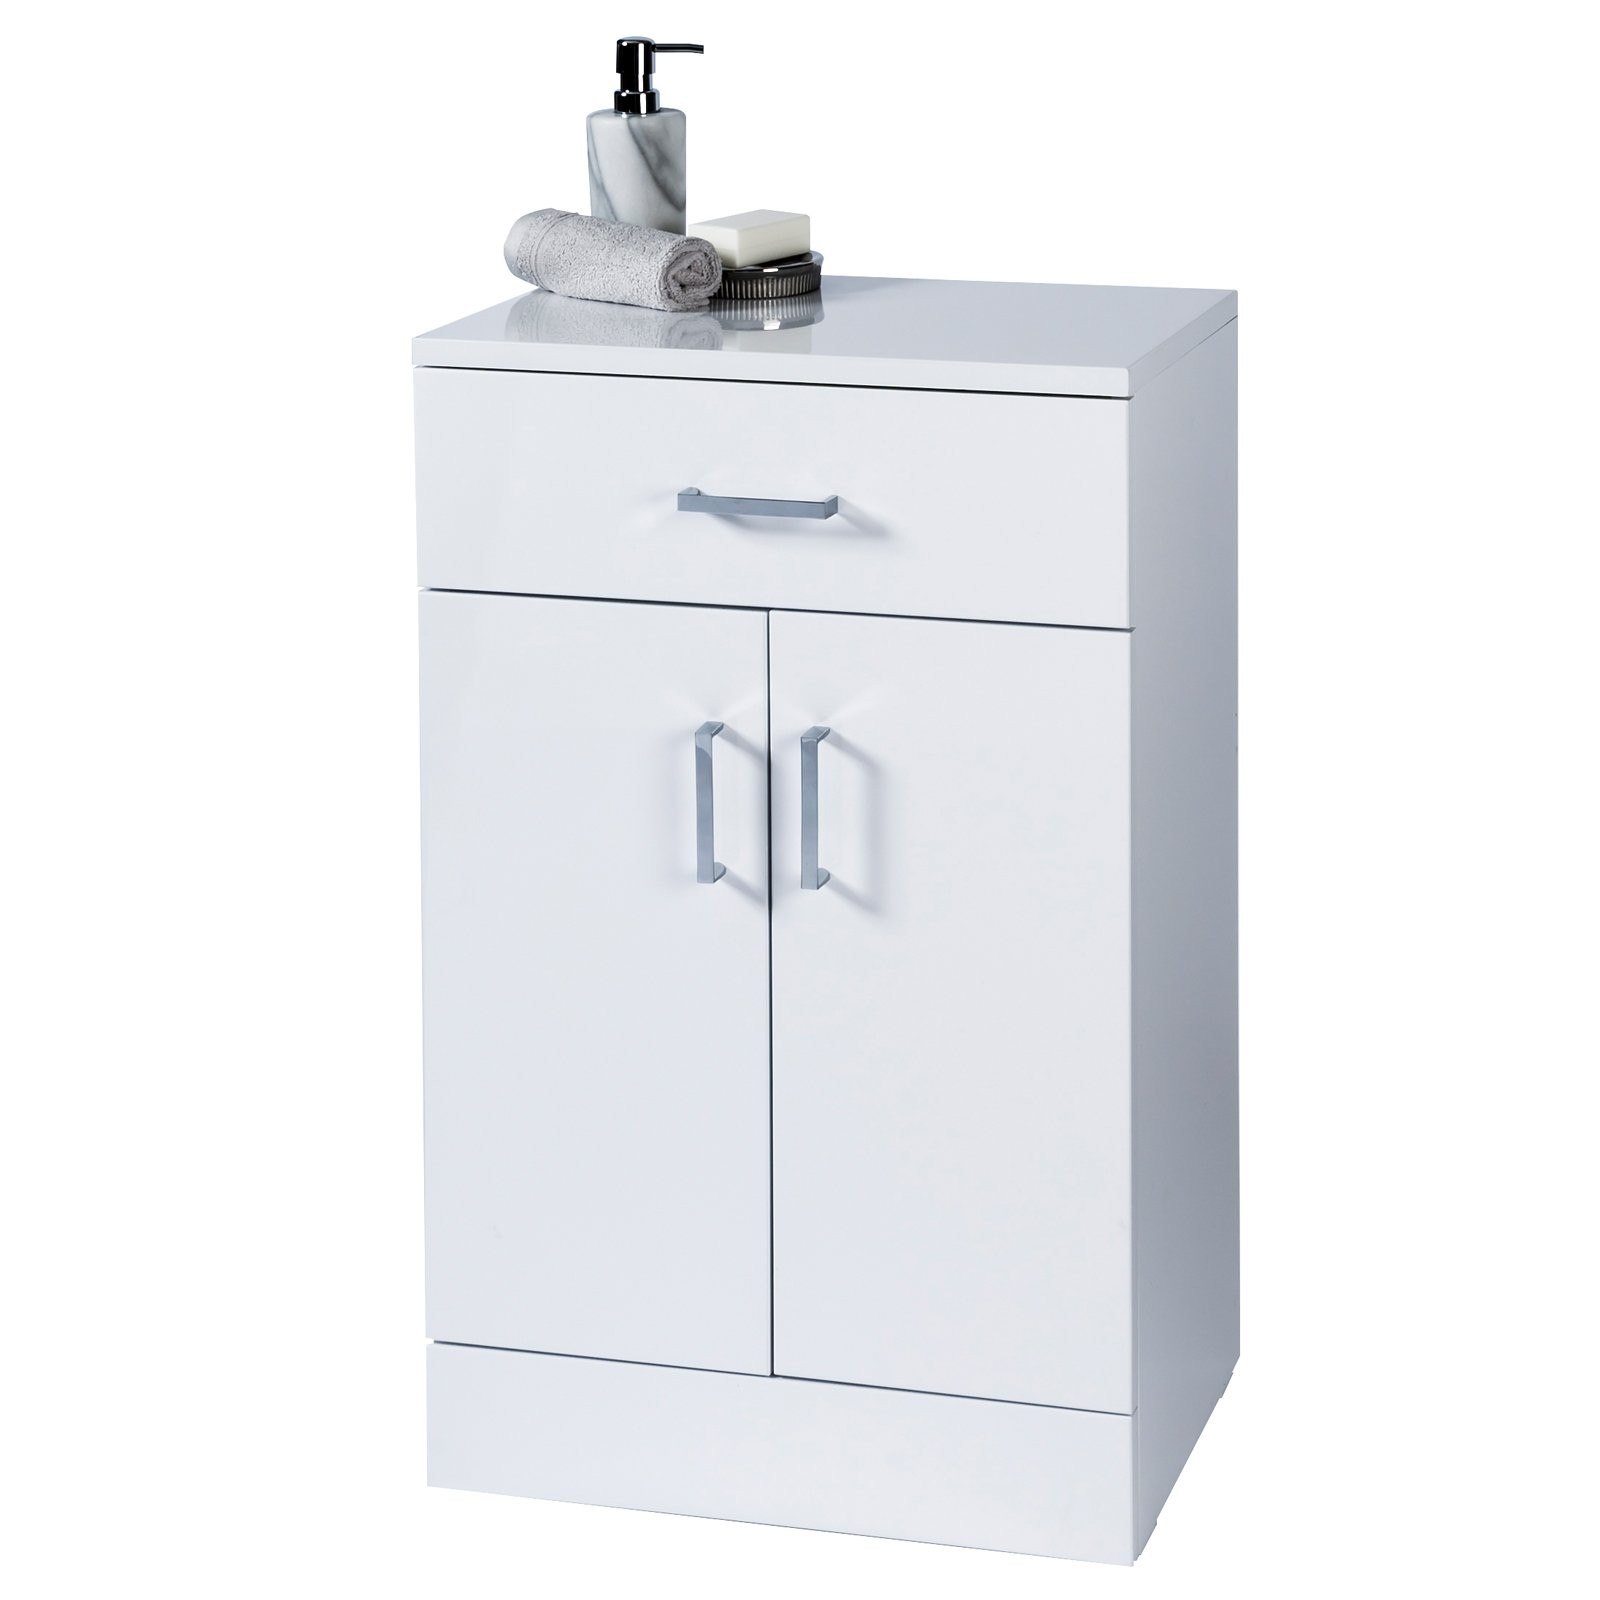 Salerno Freestanding White Gloss Bathroom Cabinet Showerdrape intended for proportions 1600 X 1600